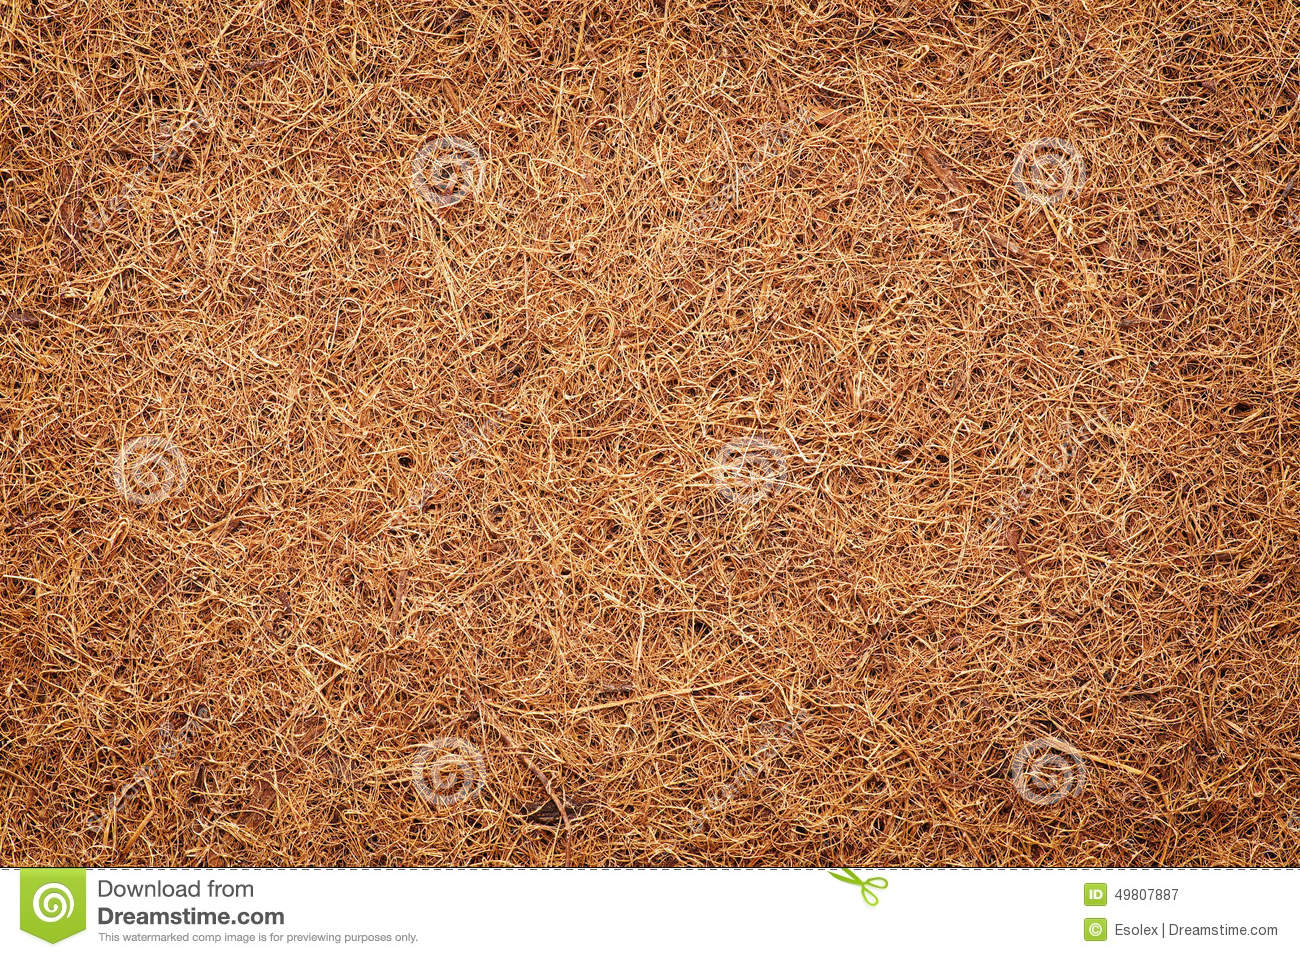 Mattress For A Child Made Of Coconut Fiber. Stock Photo